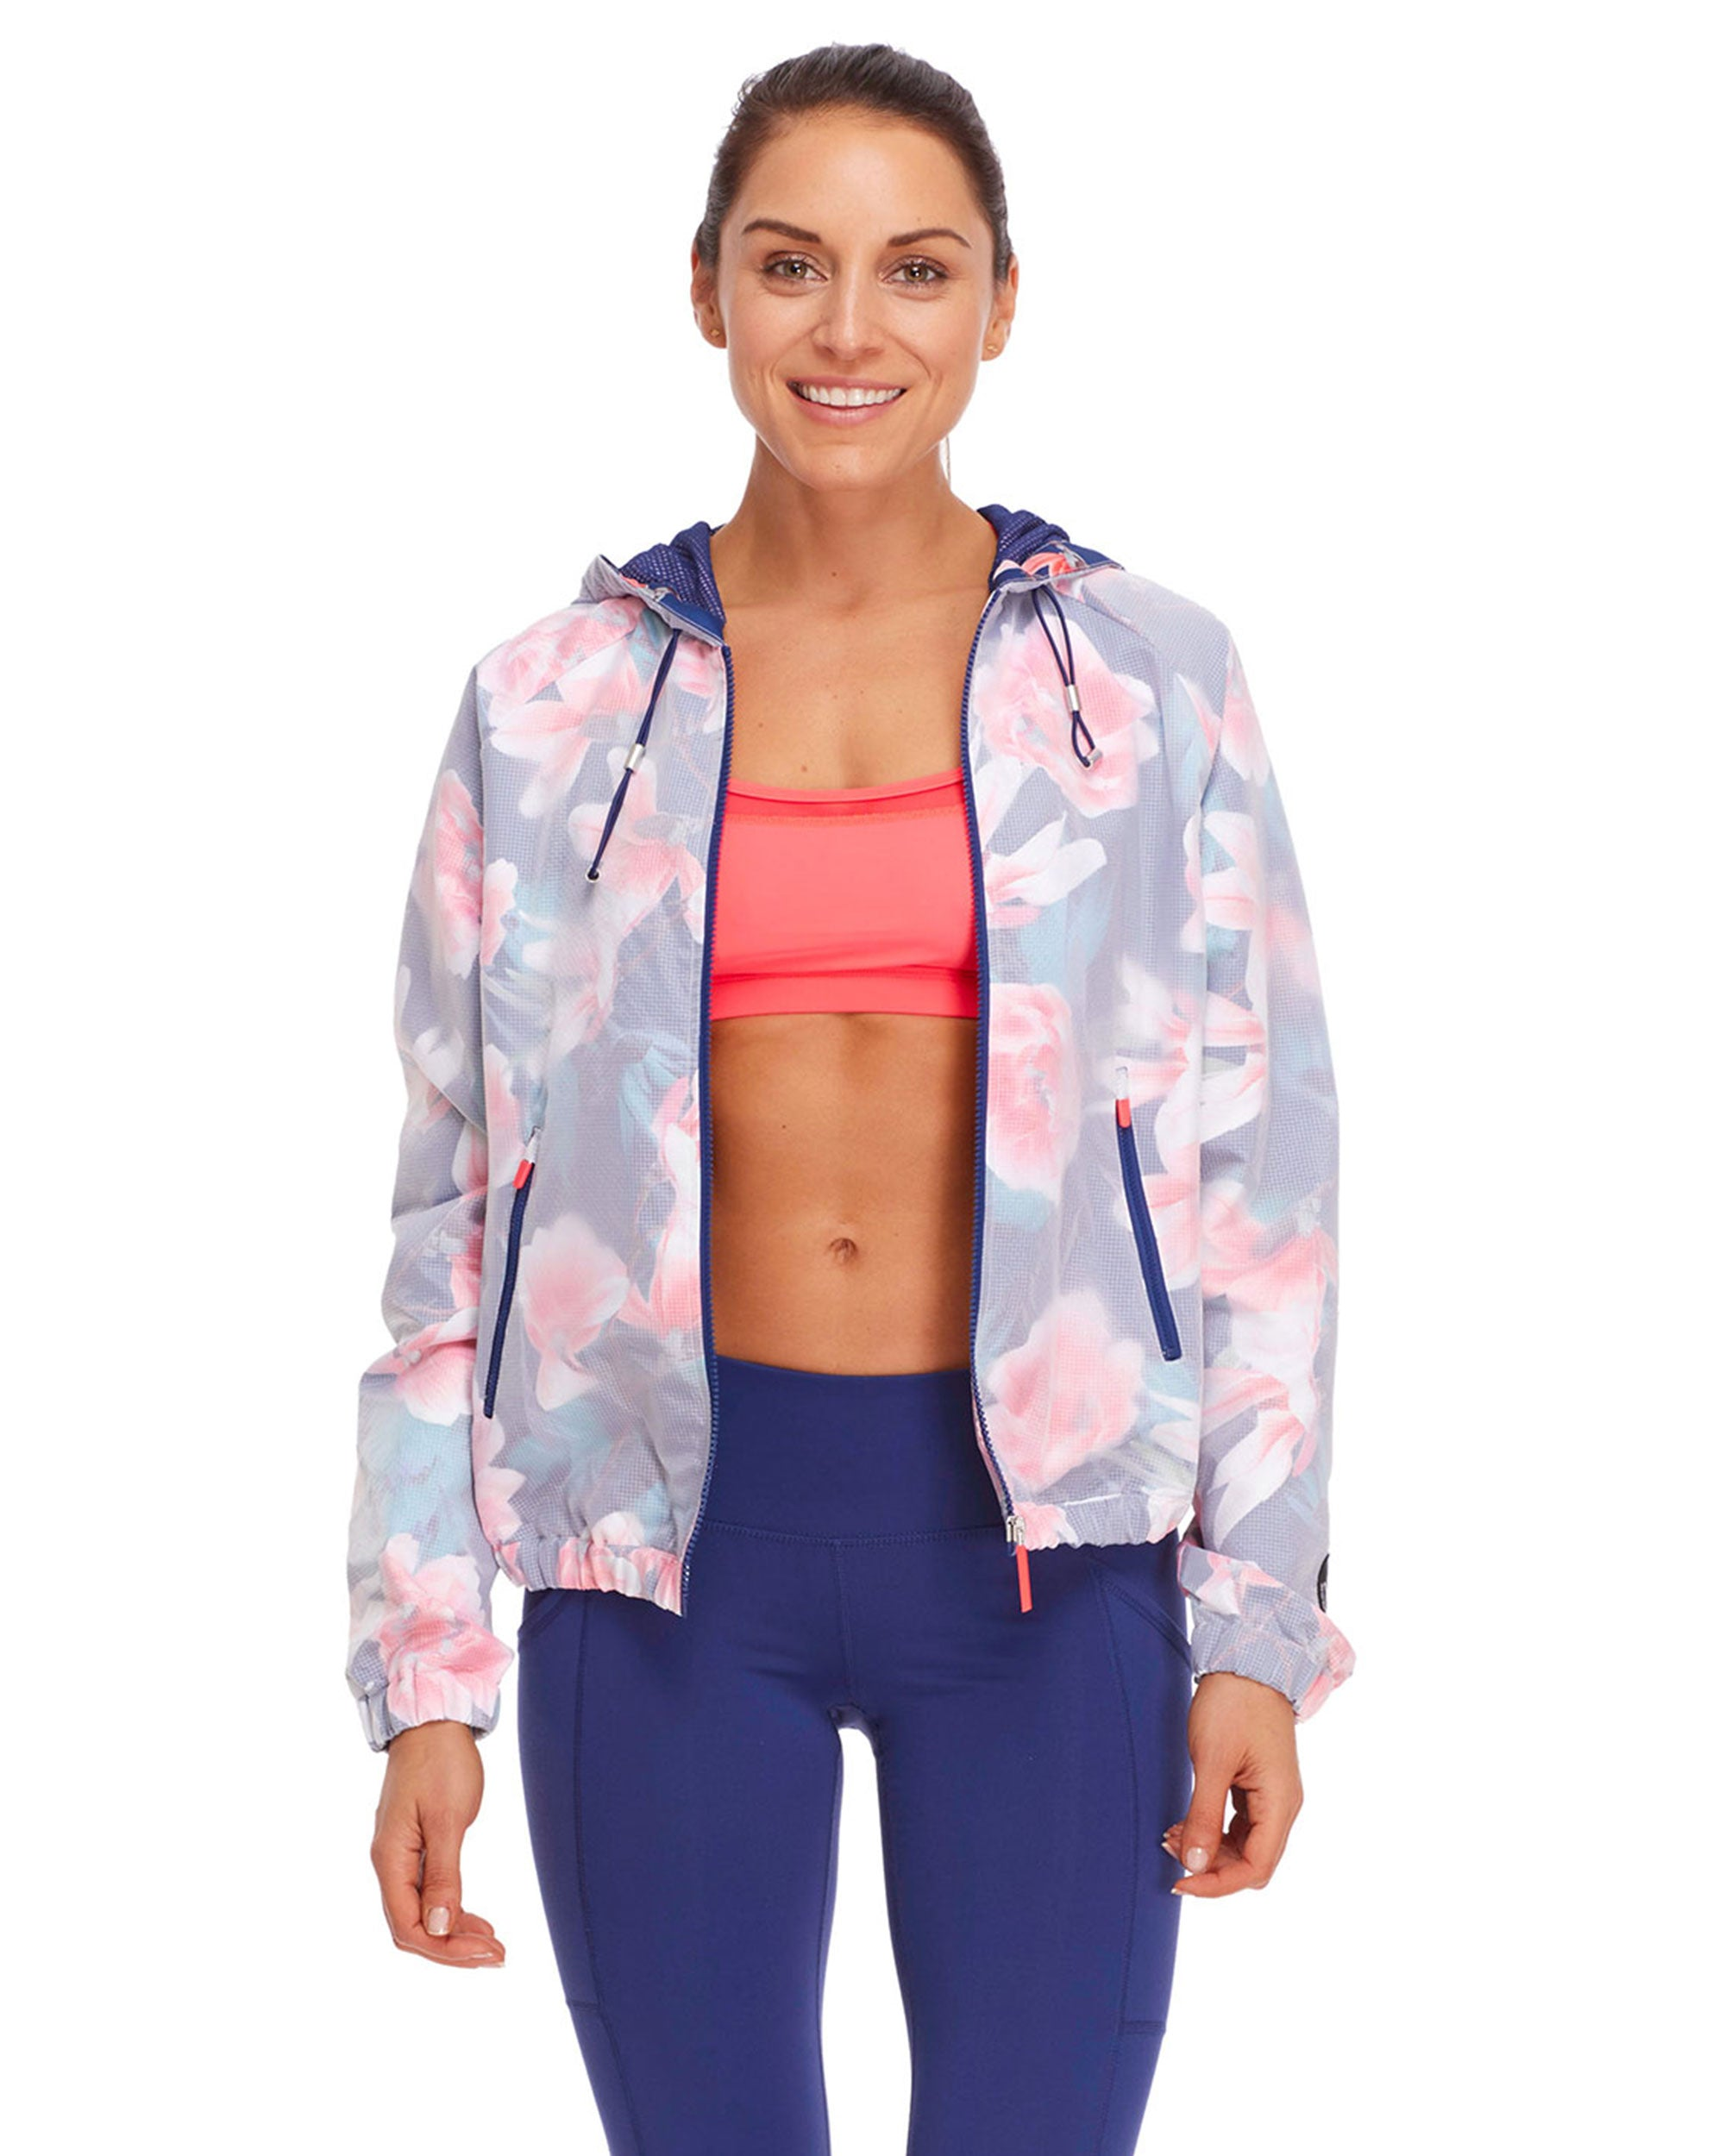 Aphrodite Aromatica Hoodie Jacket